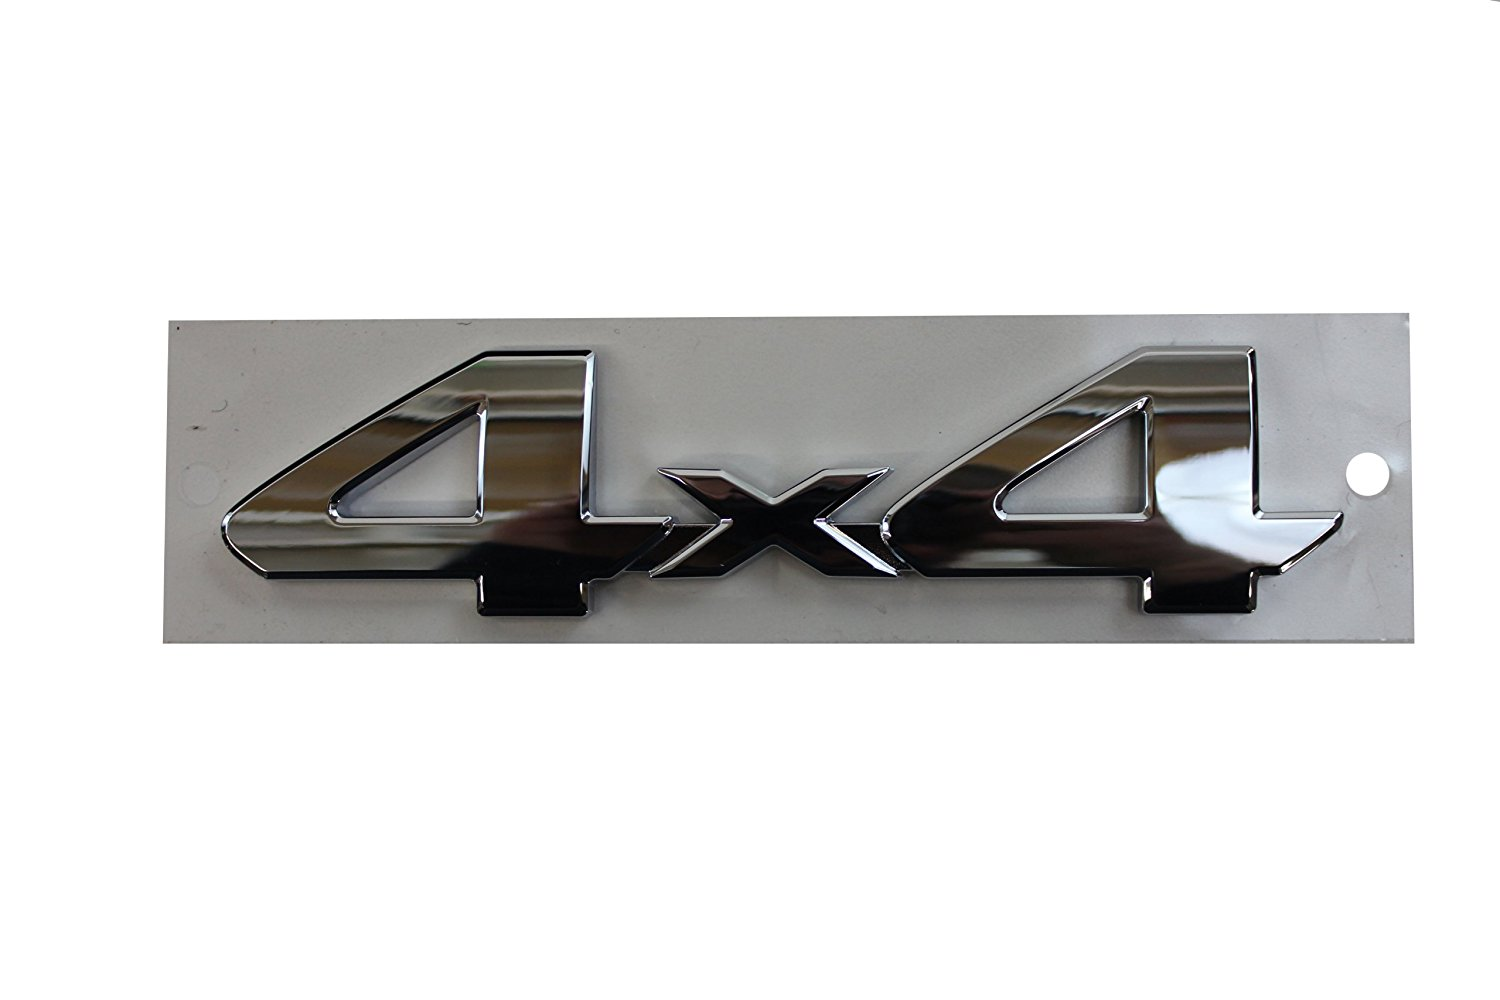 Toyota 4x4 Emblem 75473 0c030 31 00 Pure Tacoma Parts And Accessories For Your Toyota Tacoma